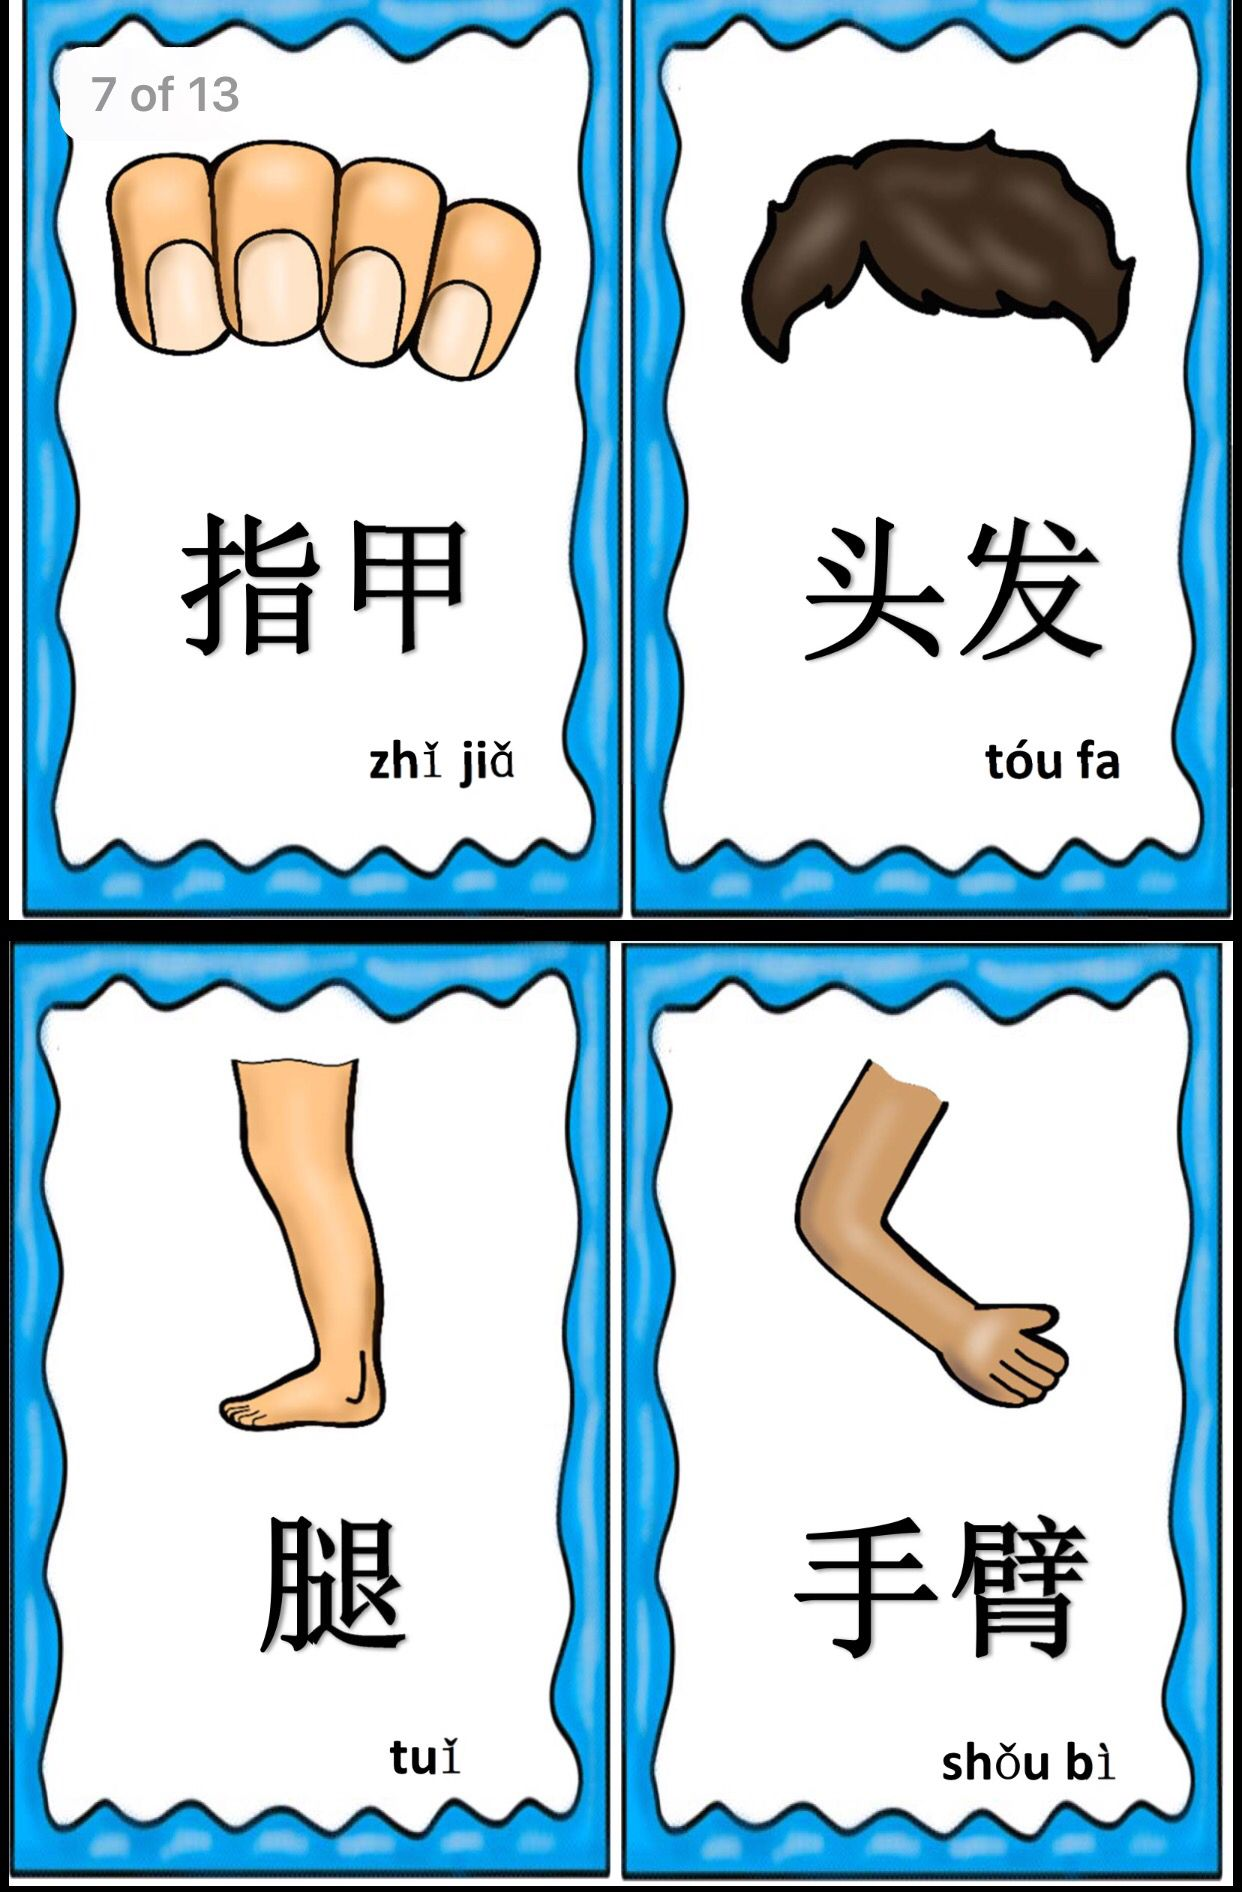 Pin On Mandarin Body Parts Flashcards Game Cards